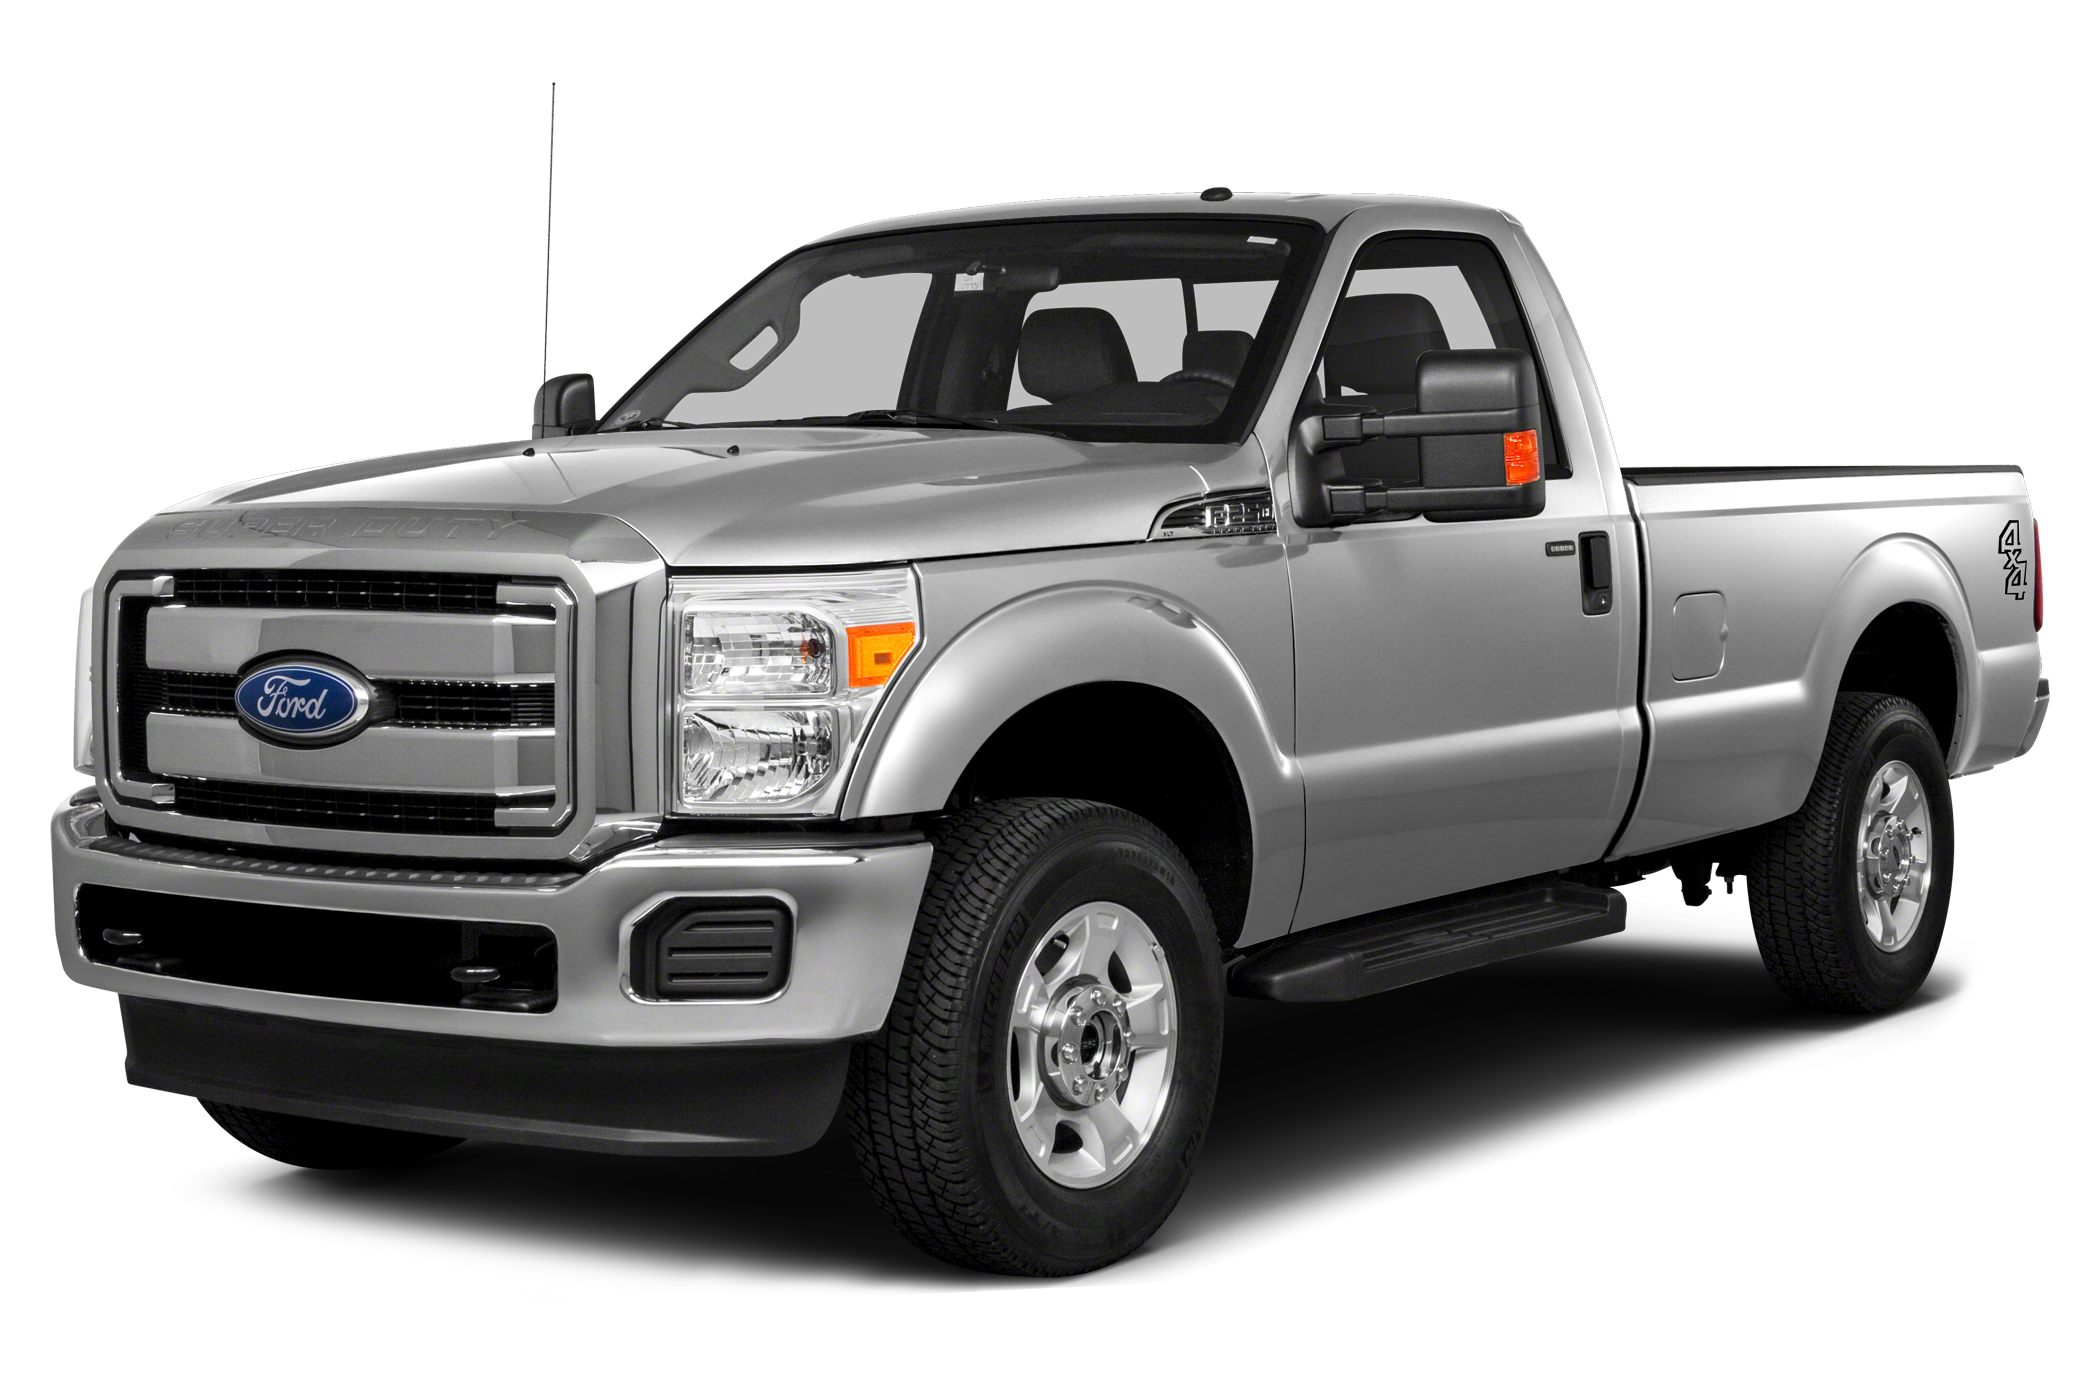 Ford f-250 photo - 4